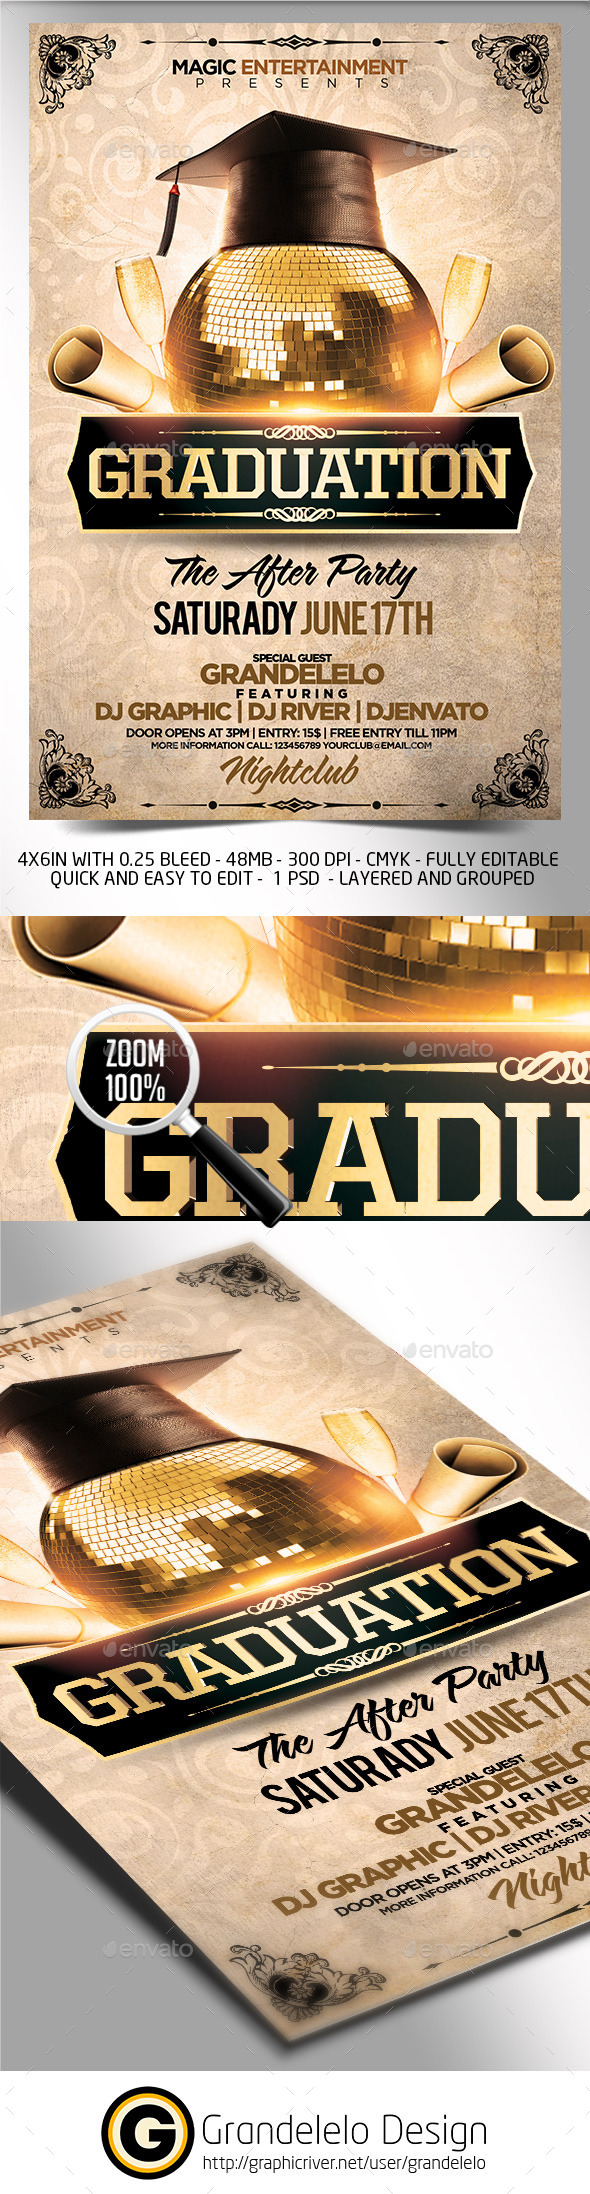 Graduation After Party Flyer Template   Clubs U0026 Parties Events